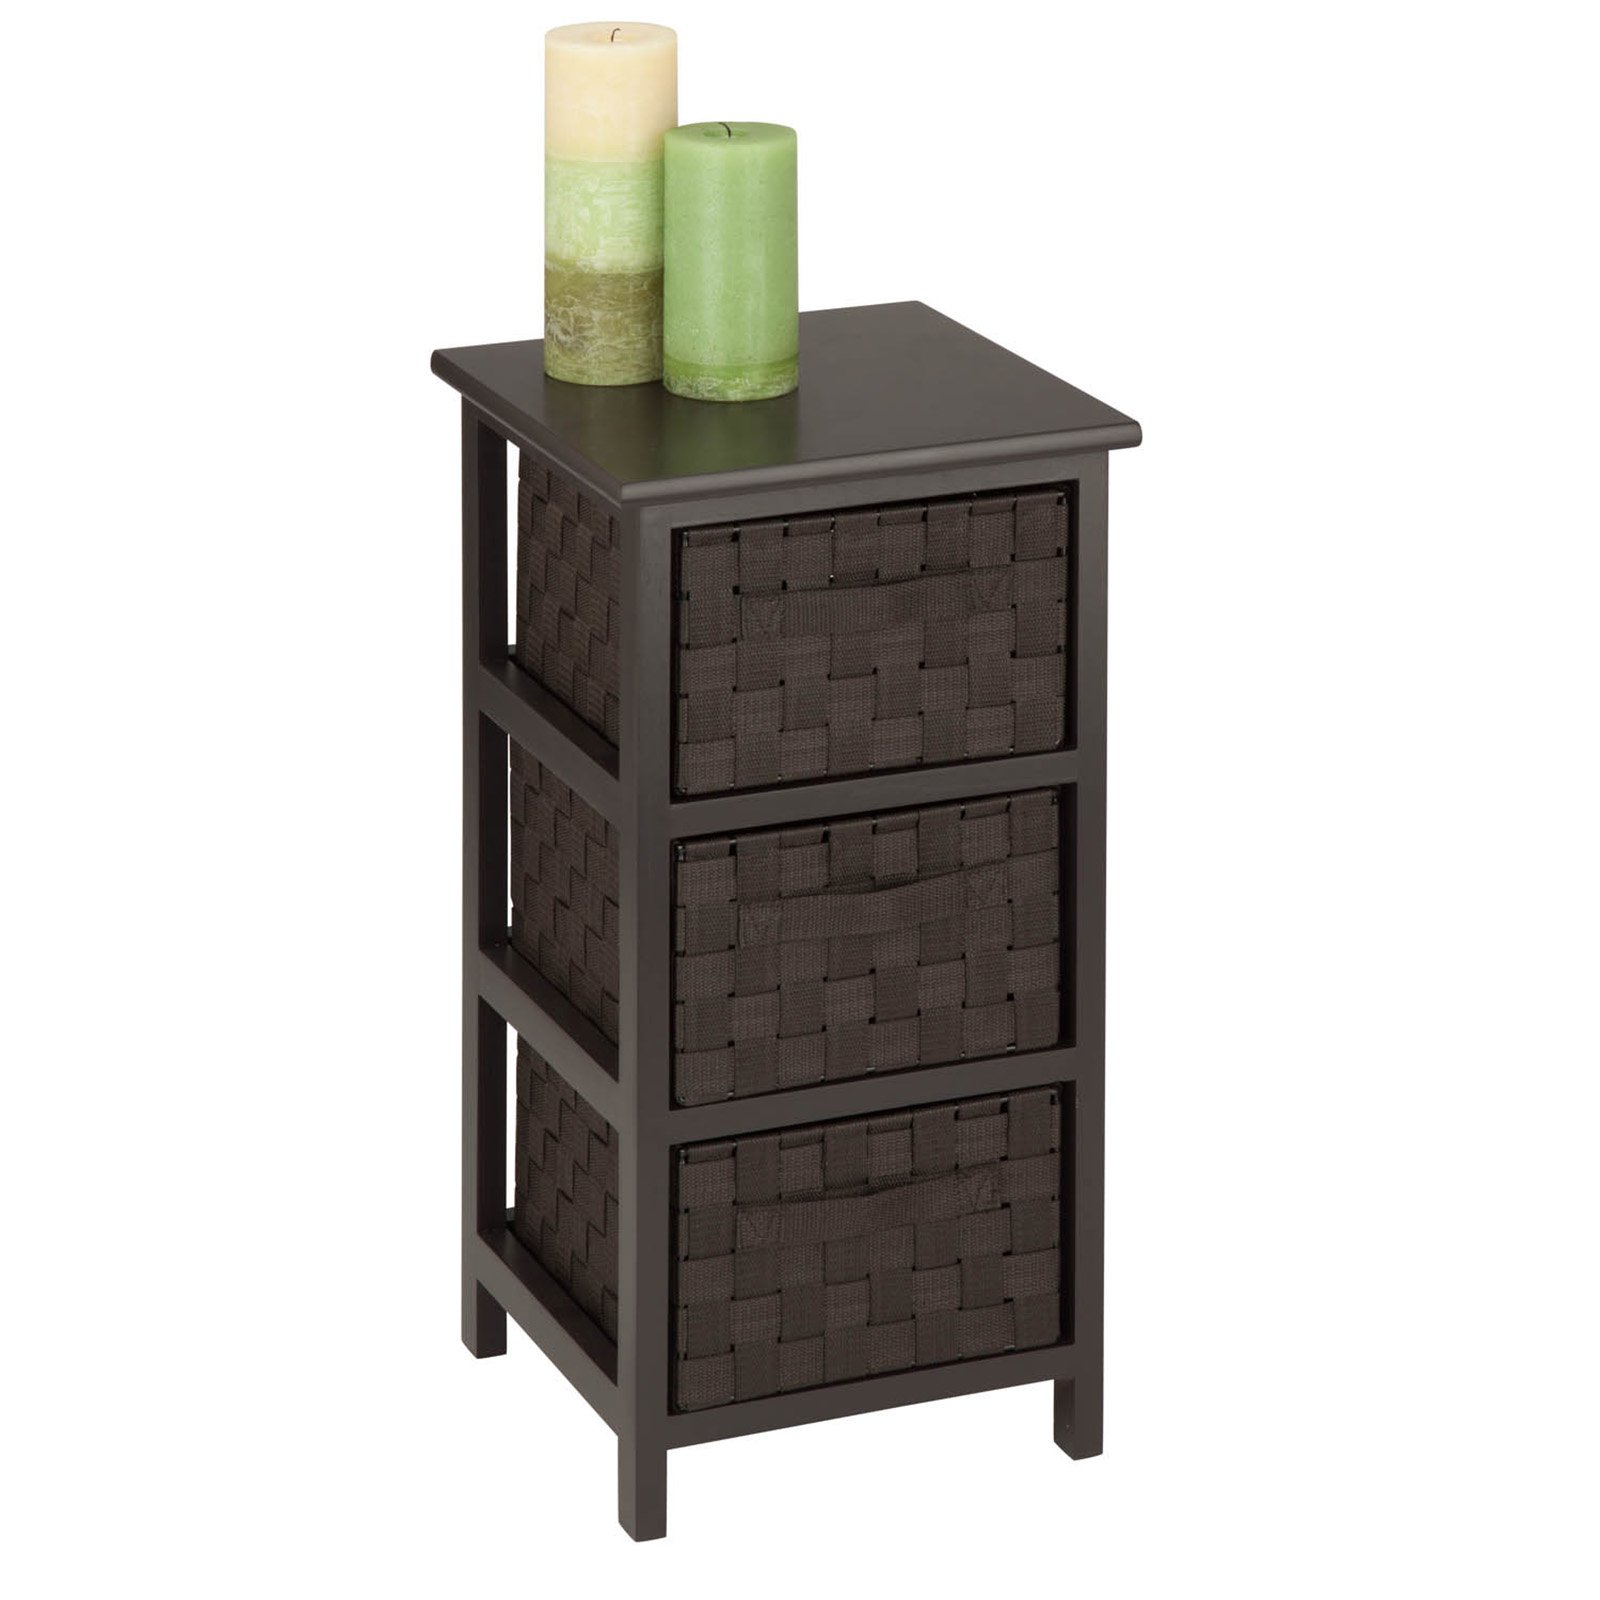 Honey Can Do Storage Chest With 3 Wicker Drawers, Espresso